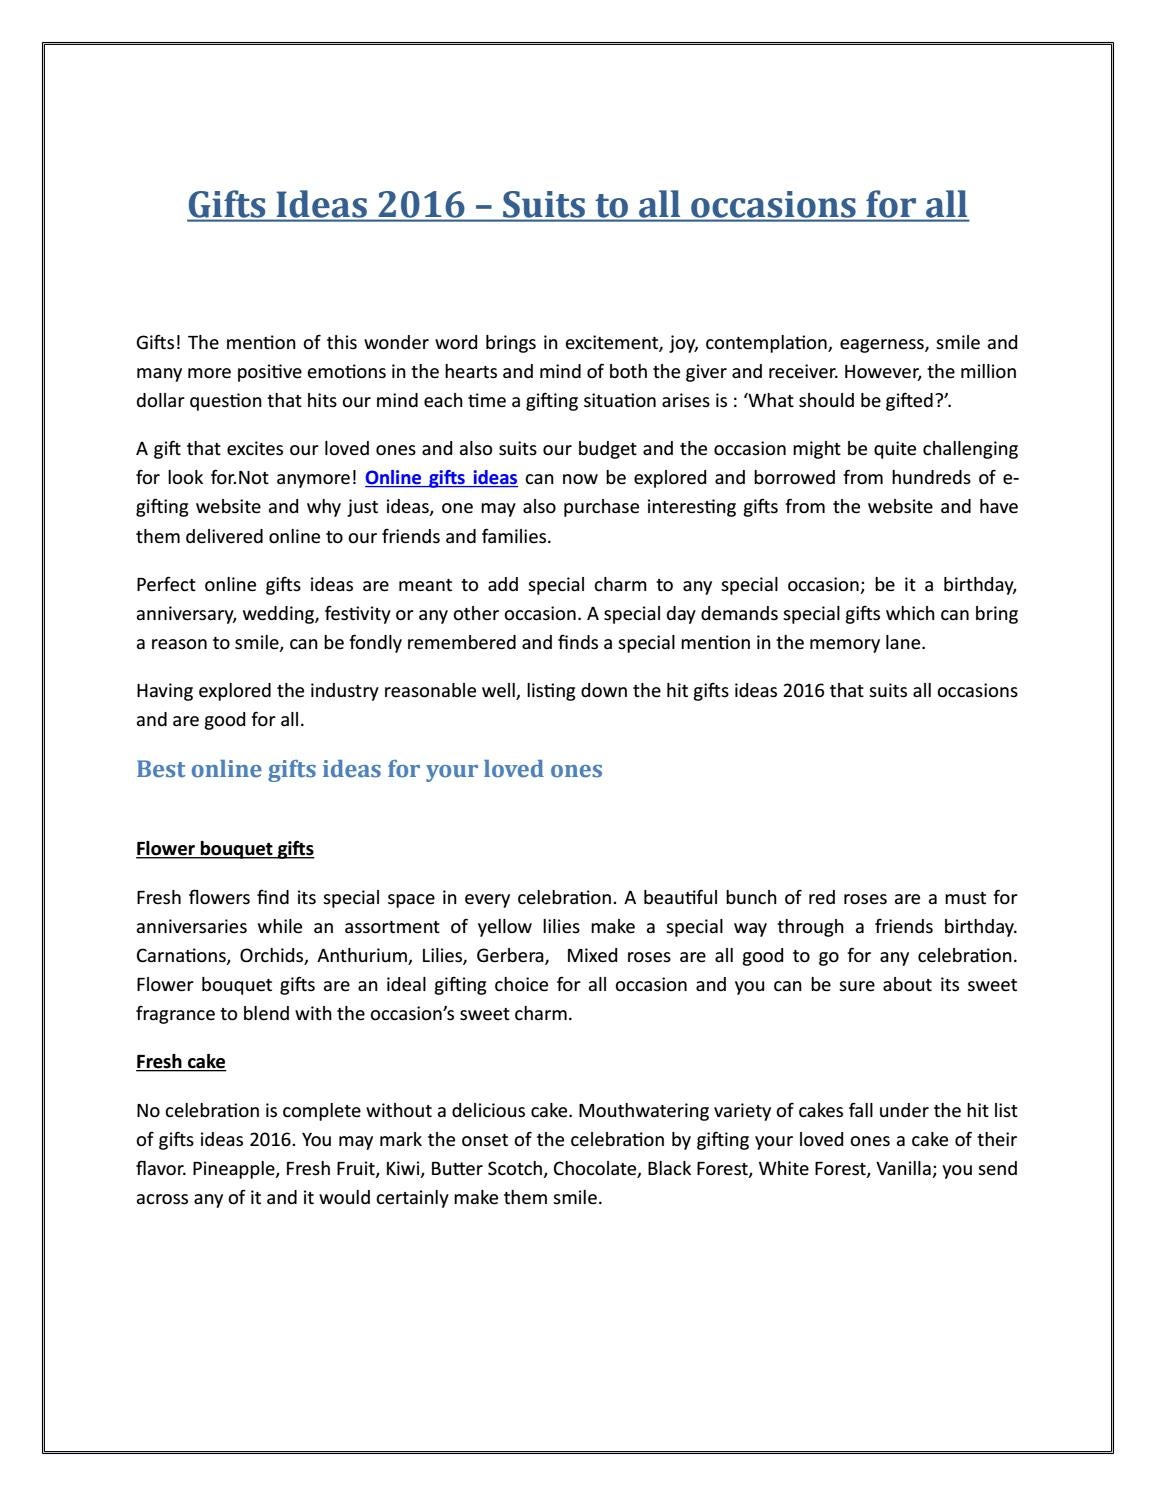 Gifts ideas 2016 – Suits to all Occasions for All by